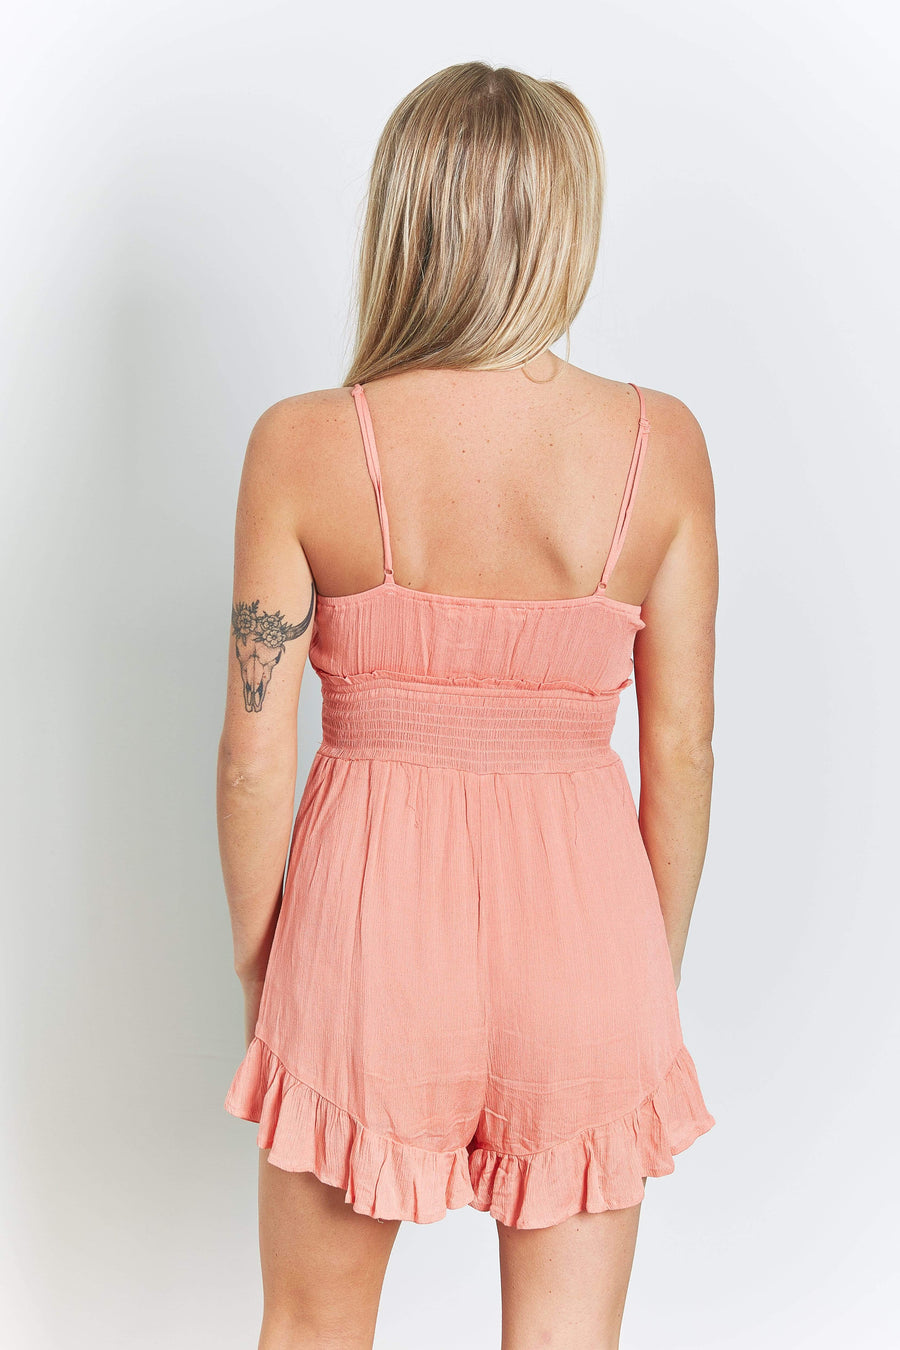 Womens ruffle detail romper - Quiet Storm Surf Shop